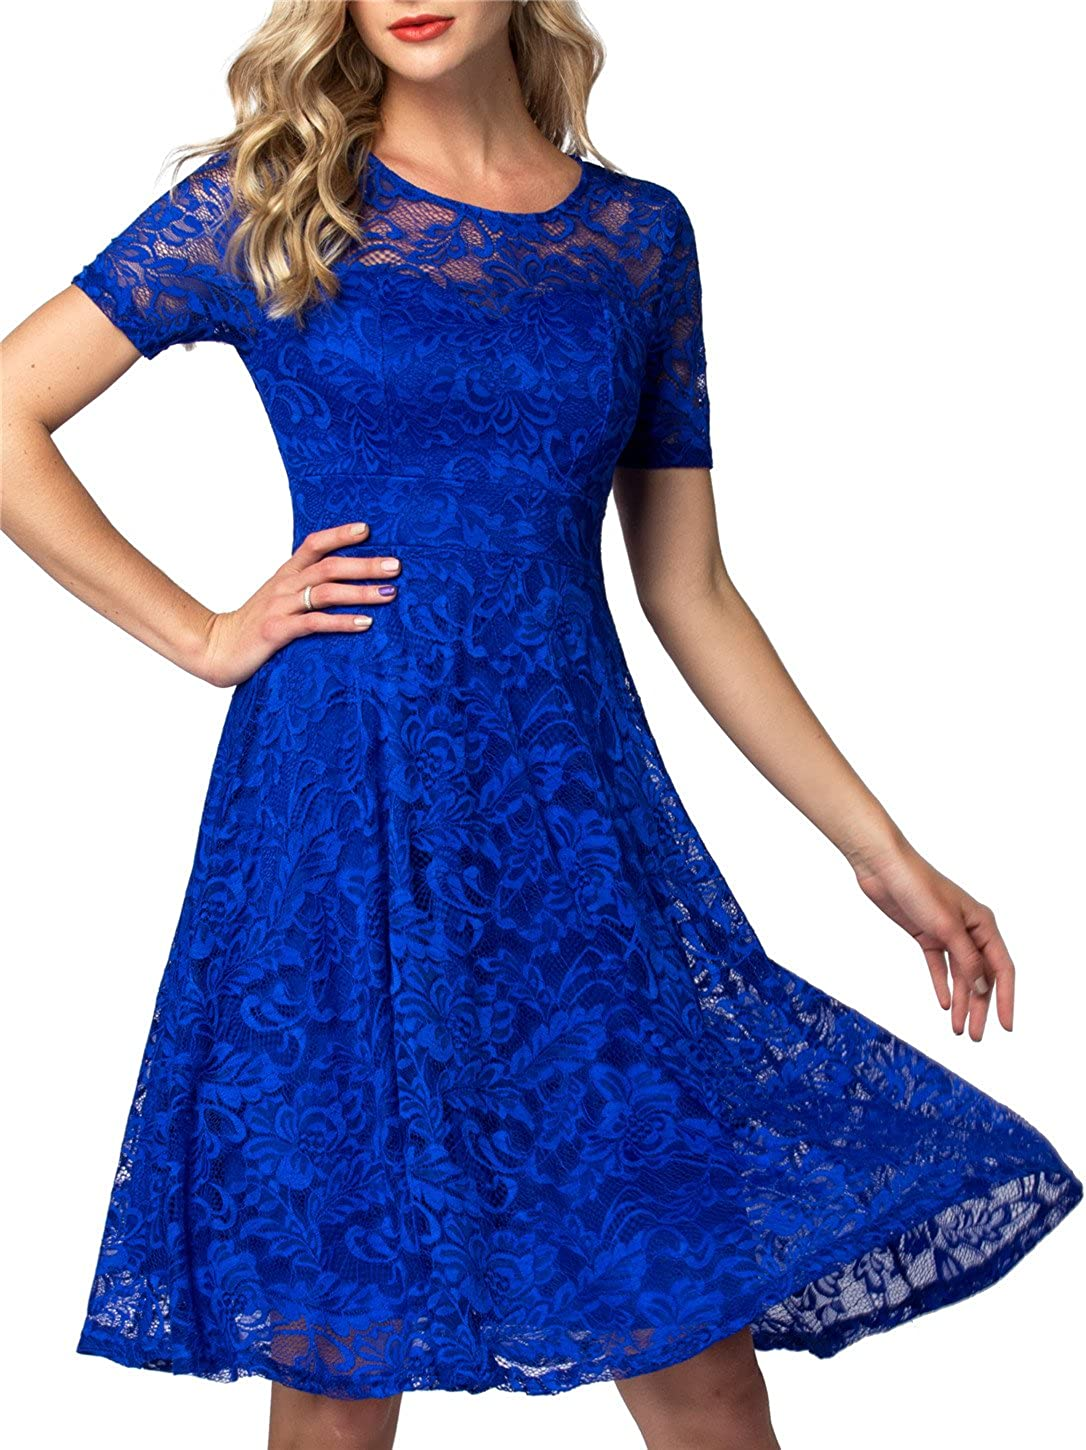 AONOUR Women's Lace Cocktail Dresses Elegant Swing Dress Bridesmaid Party Dress with Short Sleeve